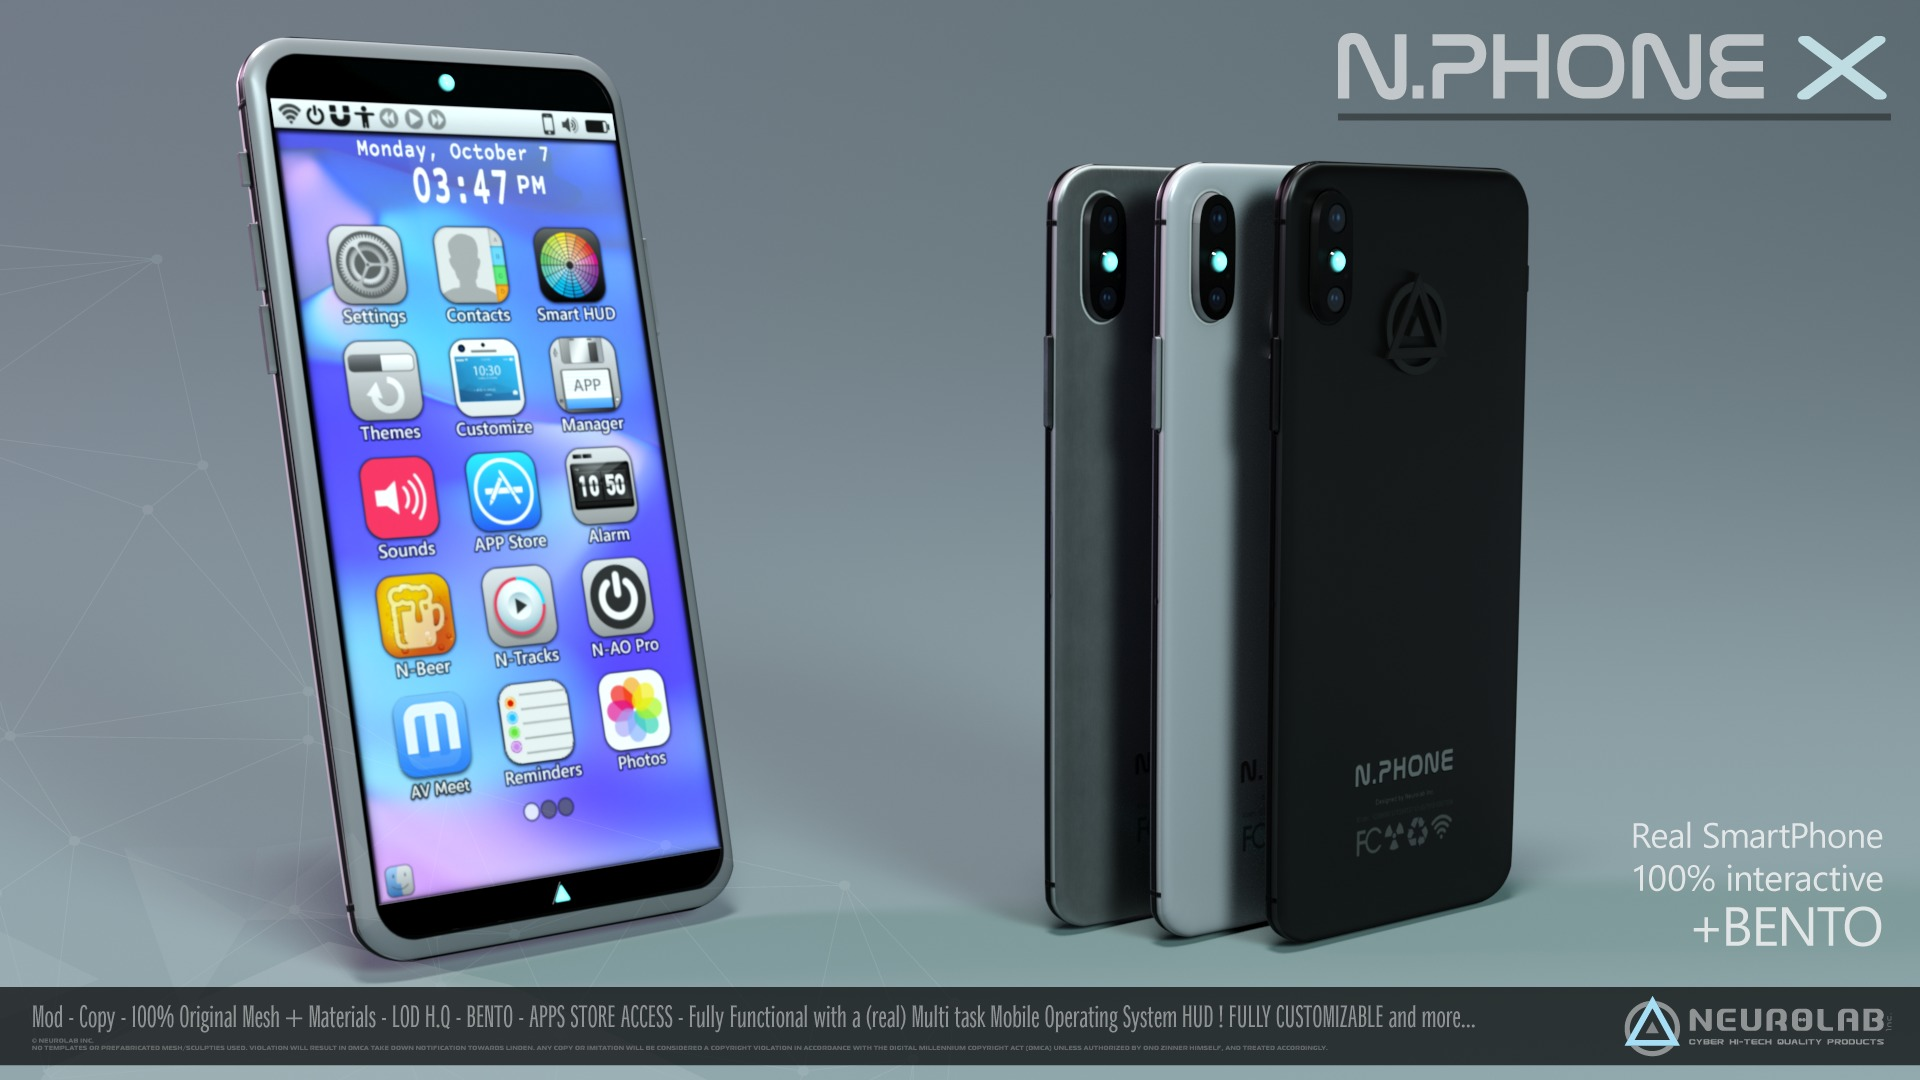 N.PHONE X (Real SmartPhone with AIO HUD) *NEW*